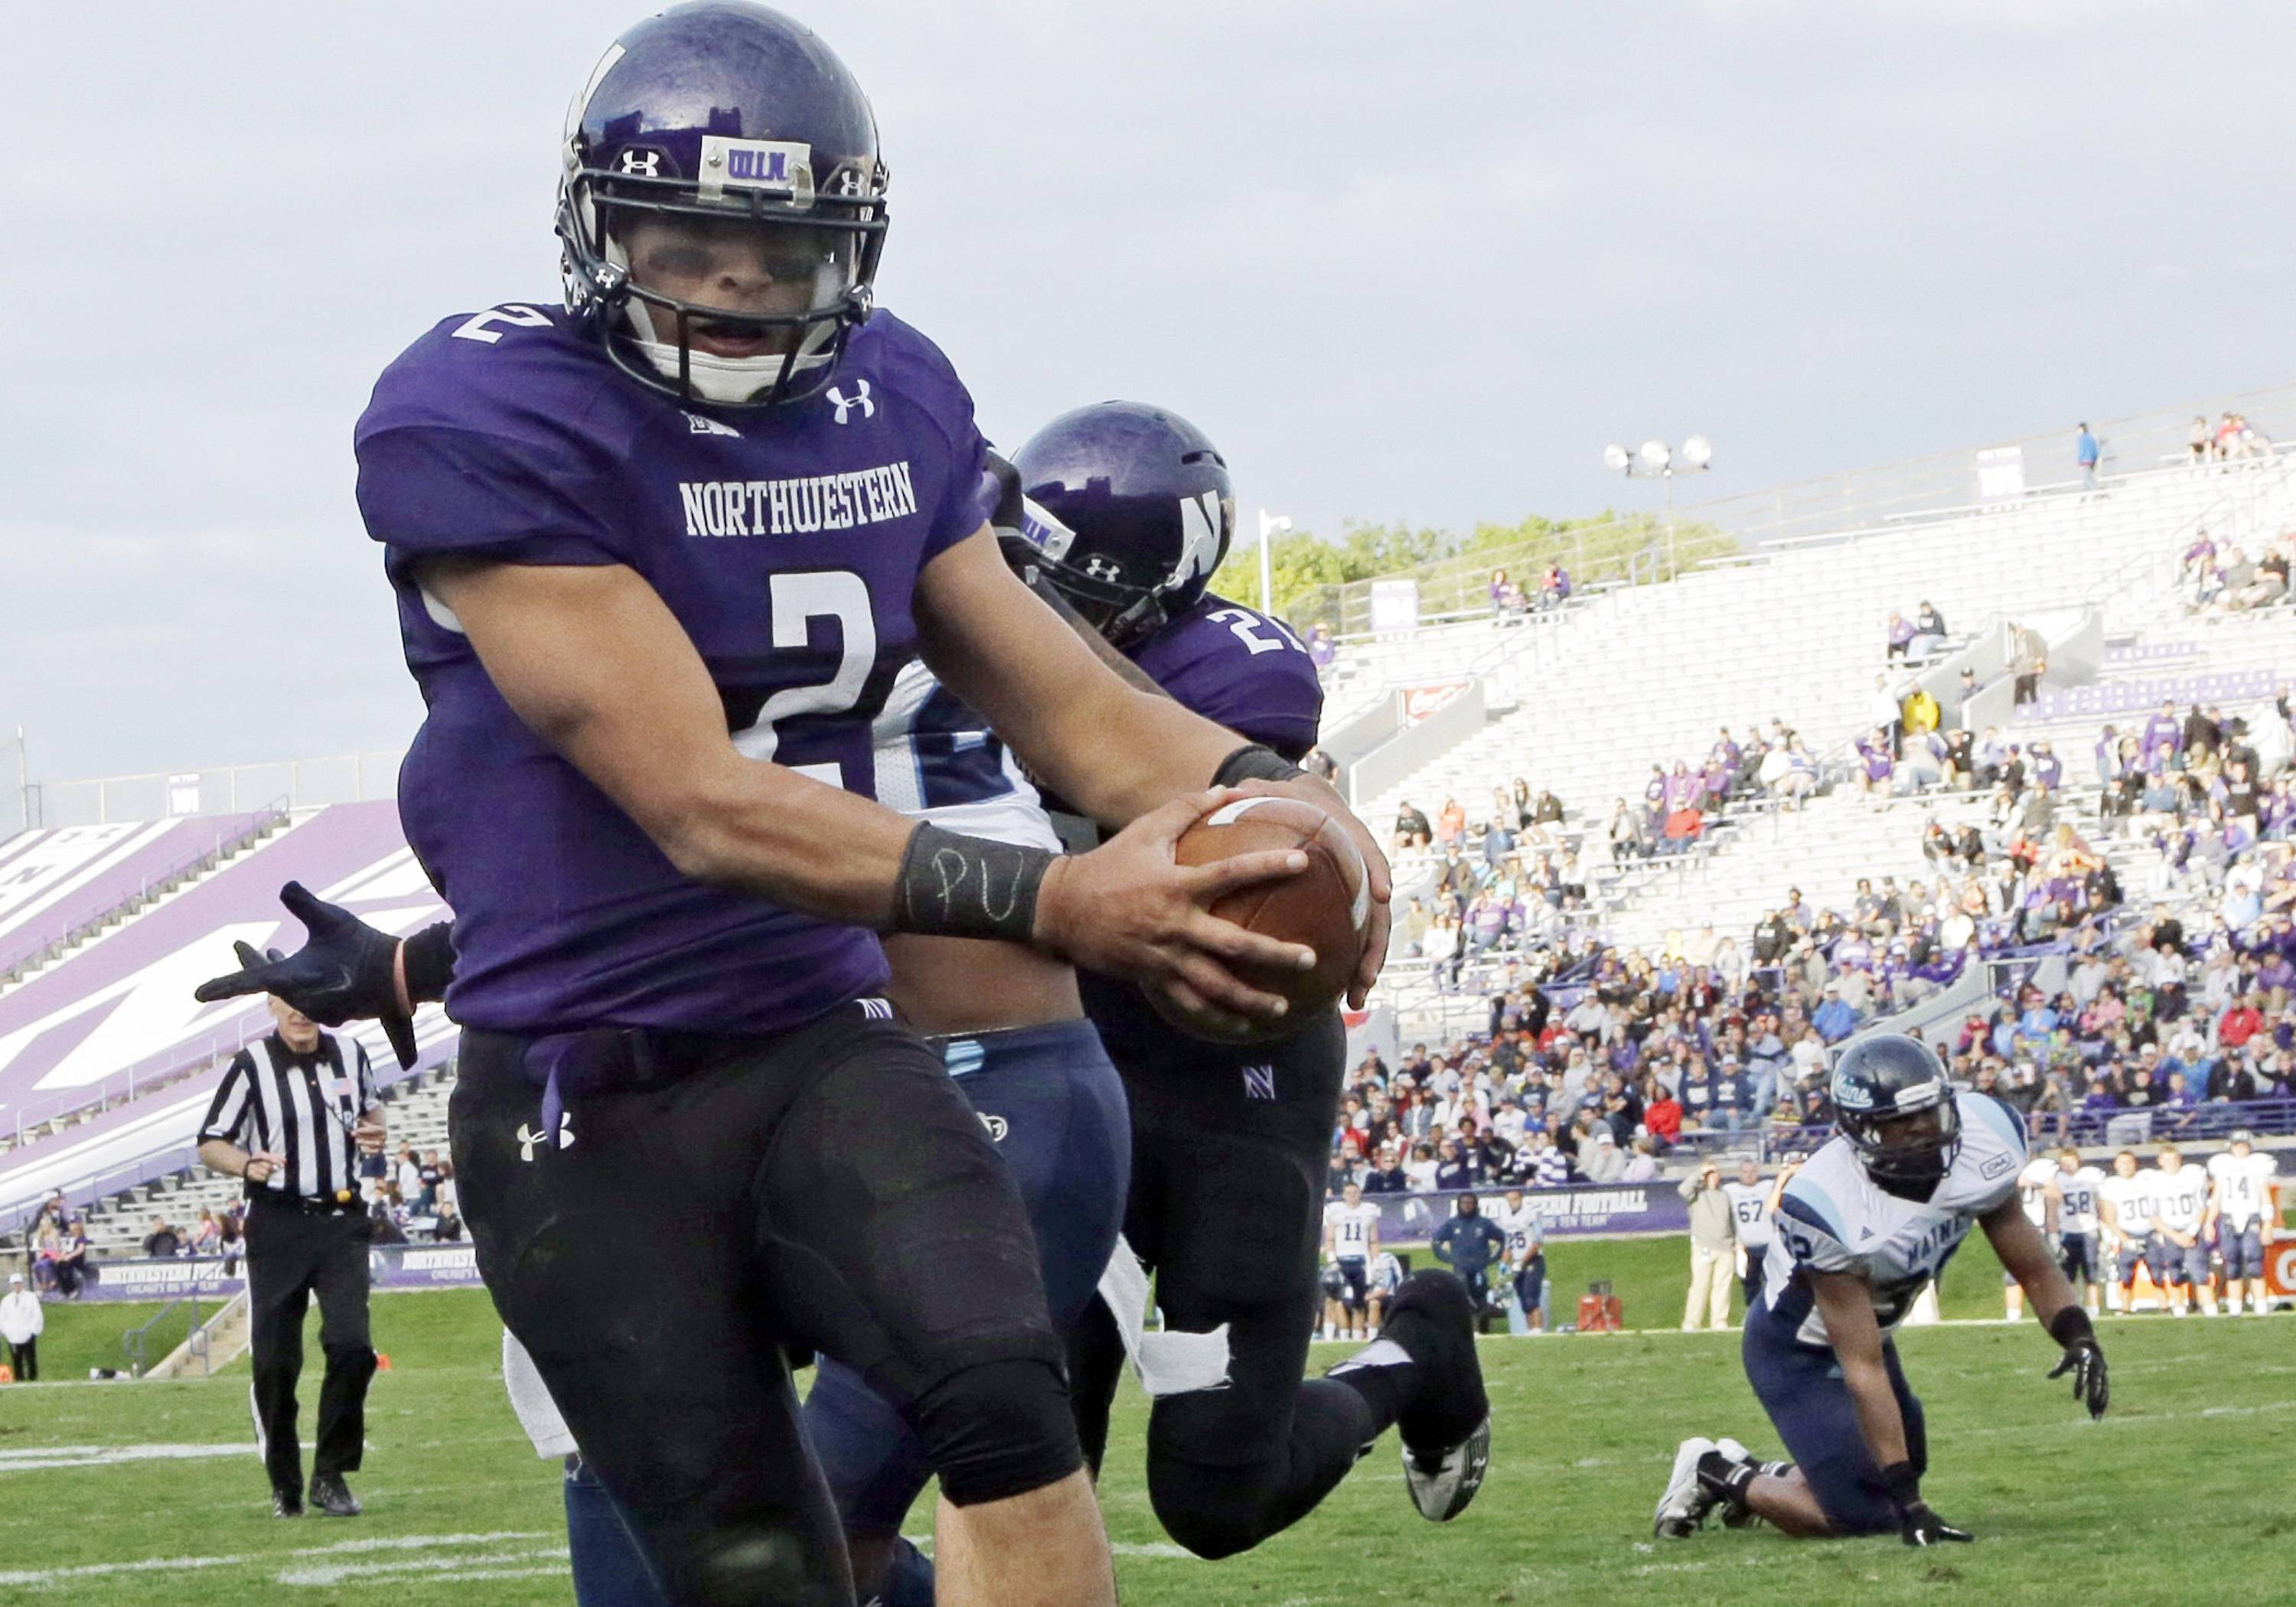 "In this photo from Sept. 21, 2013, Northwestern quarterback Kain Colter, wears APU for ""All Players United"" on wrist tape as he scores a touchdown during an NCAA college football game against Maine in Evanston. The decision to allow Northwestern football players to unionize raises an array of questions for college sports. Among them, state schools vs. public schools, powerhouse programs vs. smaller colleges."